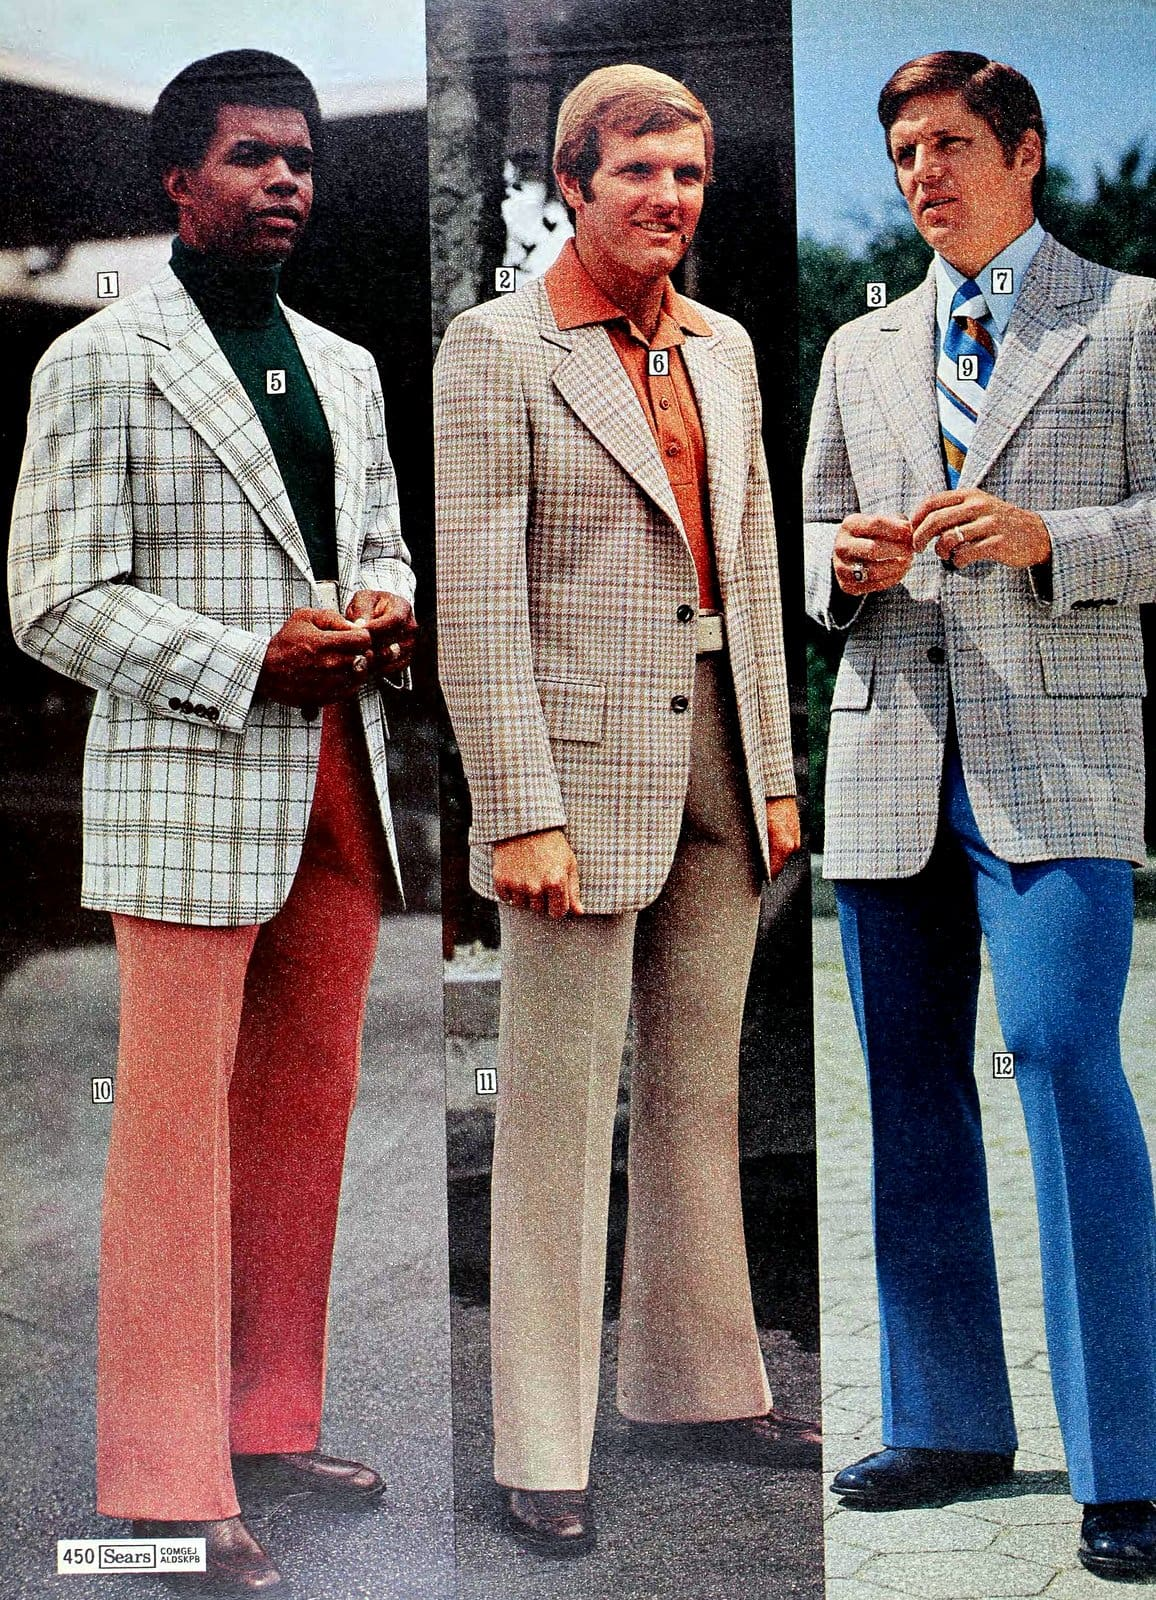 Sears suits and menswear from the 1970s (1)